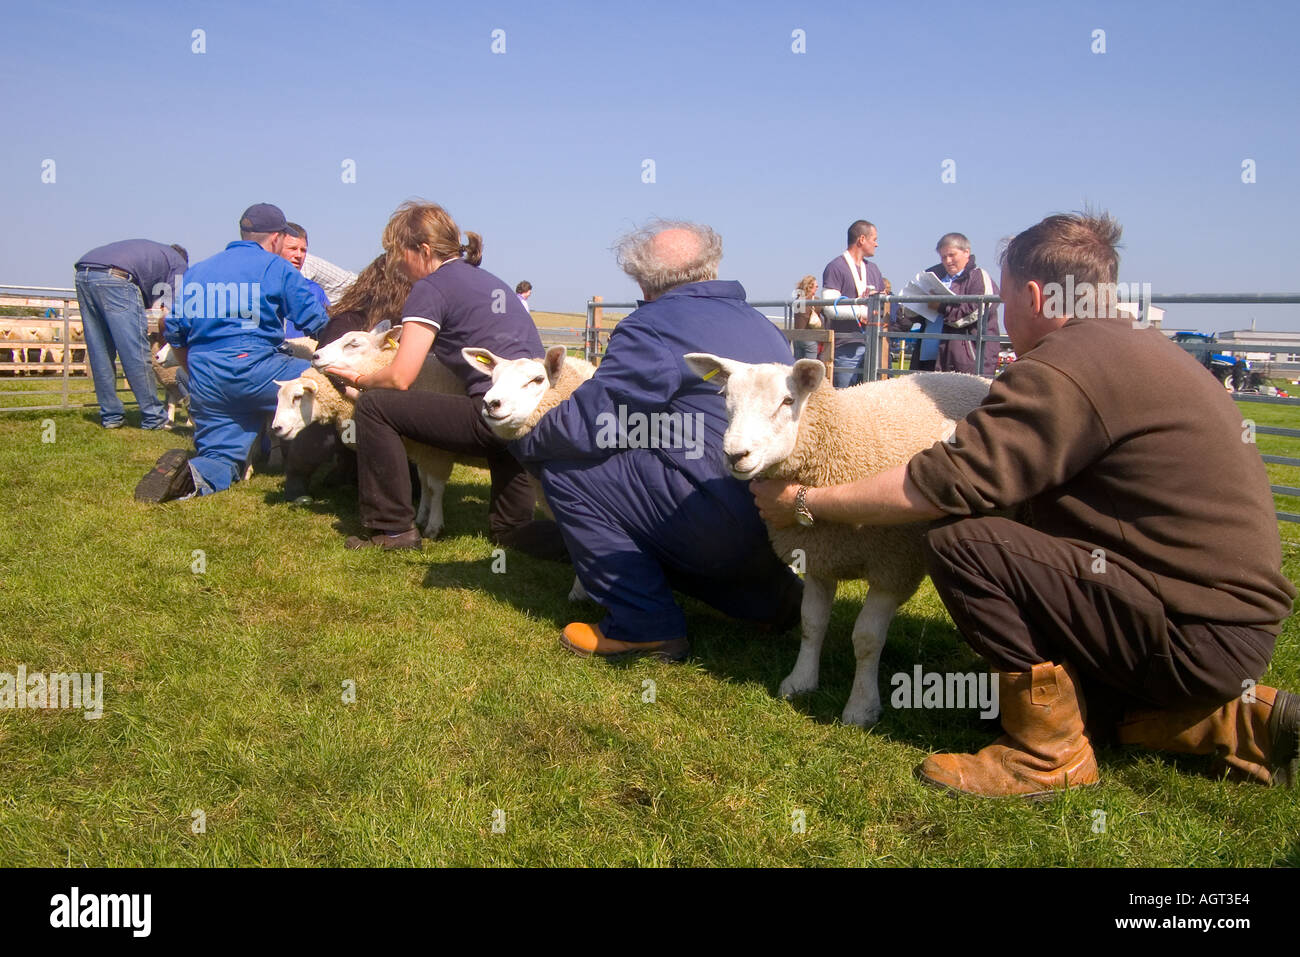 dh Annual Show SHAPINSAY ORKNEY Judge judging best pair of lambs at agricultural show Stock Photo